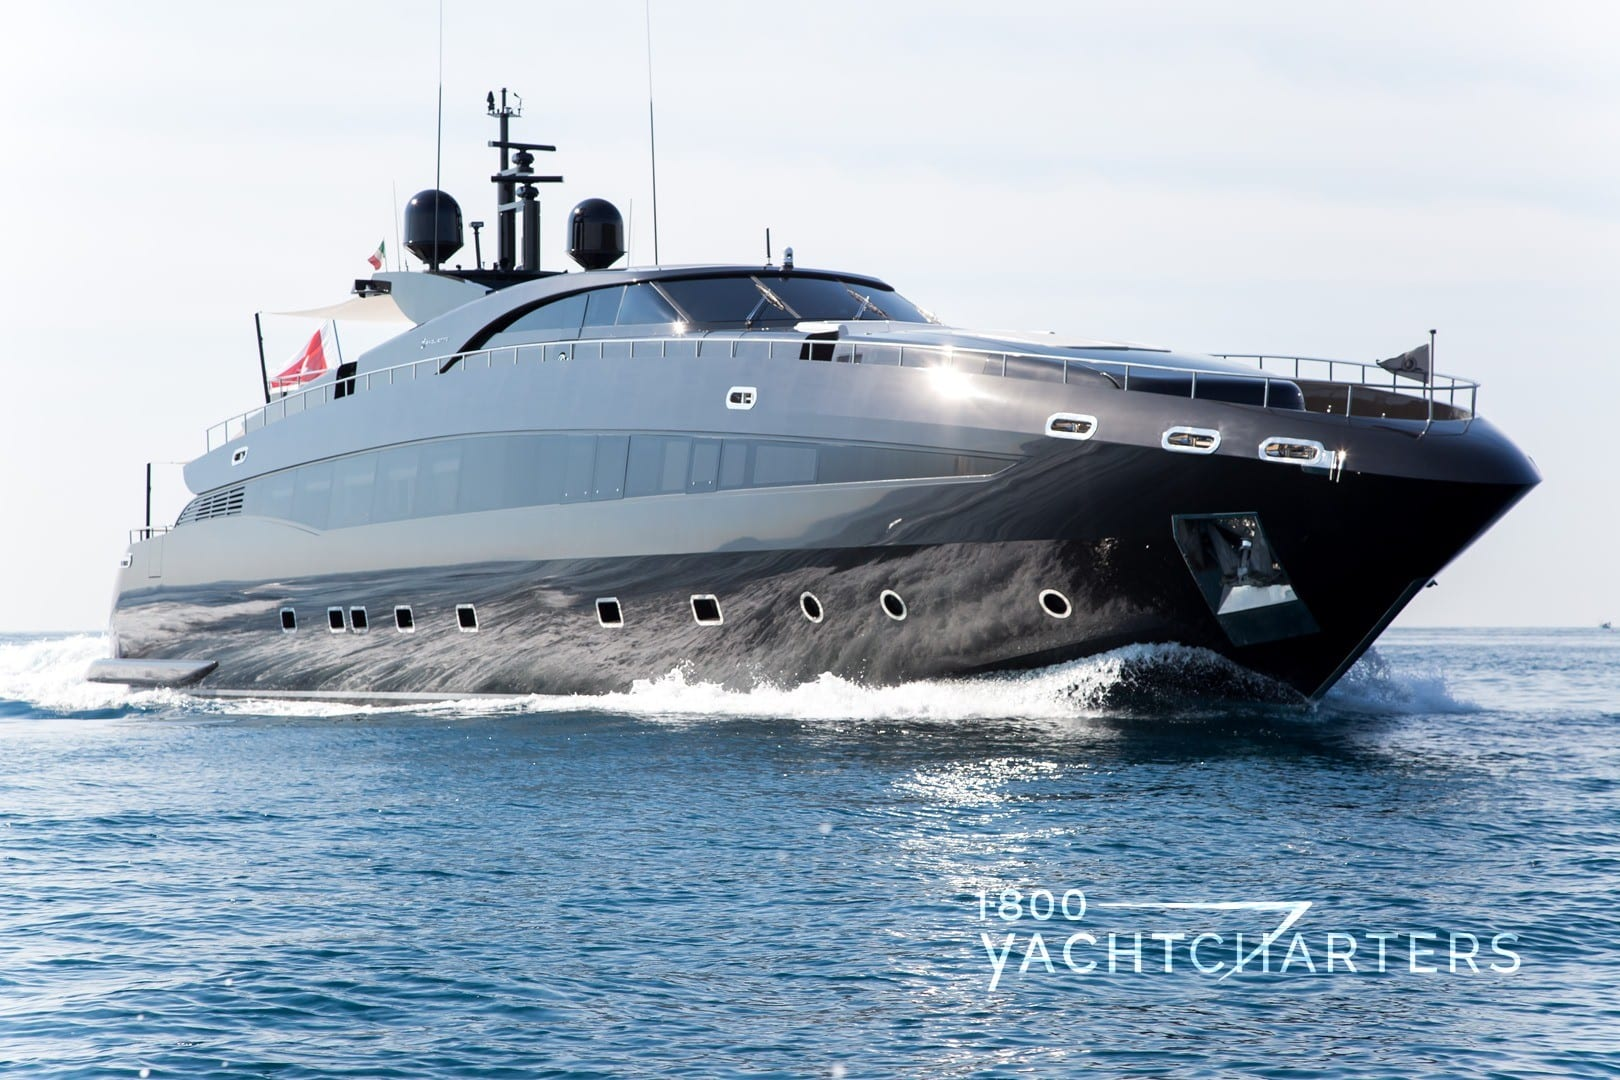 ABILITY Baglietto superyacht yacht charter vessel